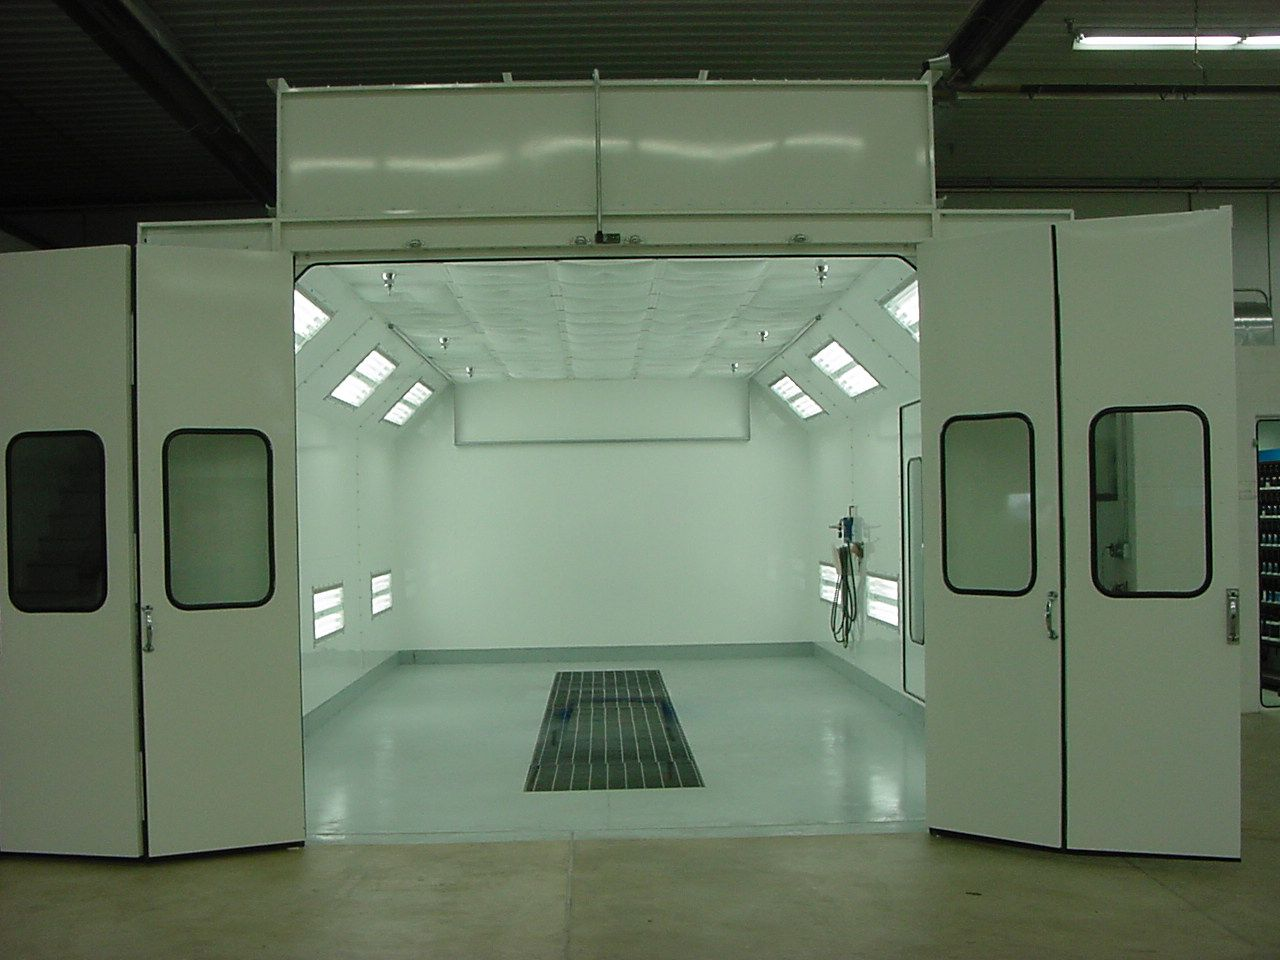 Paint Booth Clean Room For Clear Coating Or Occasional Spraying Shop Envy Pinterest